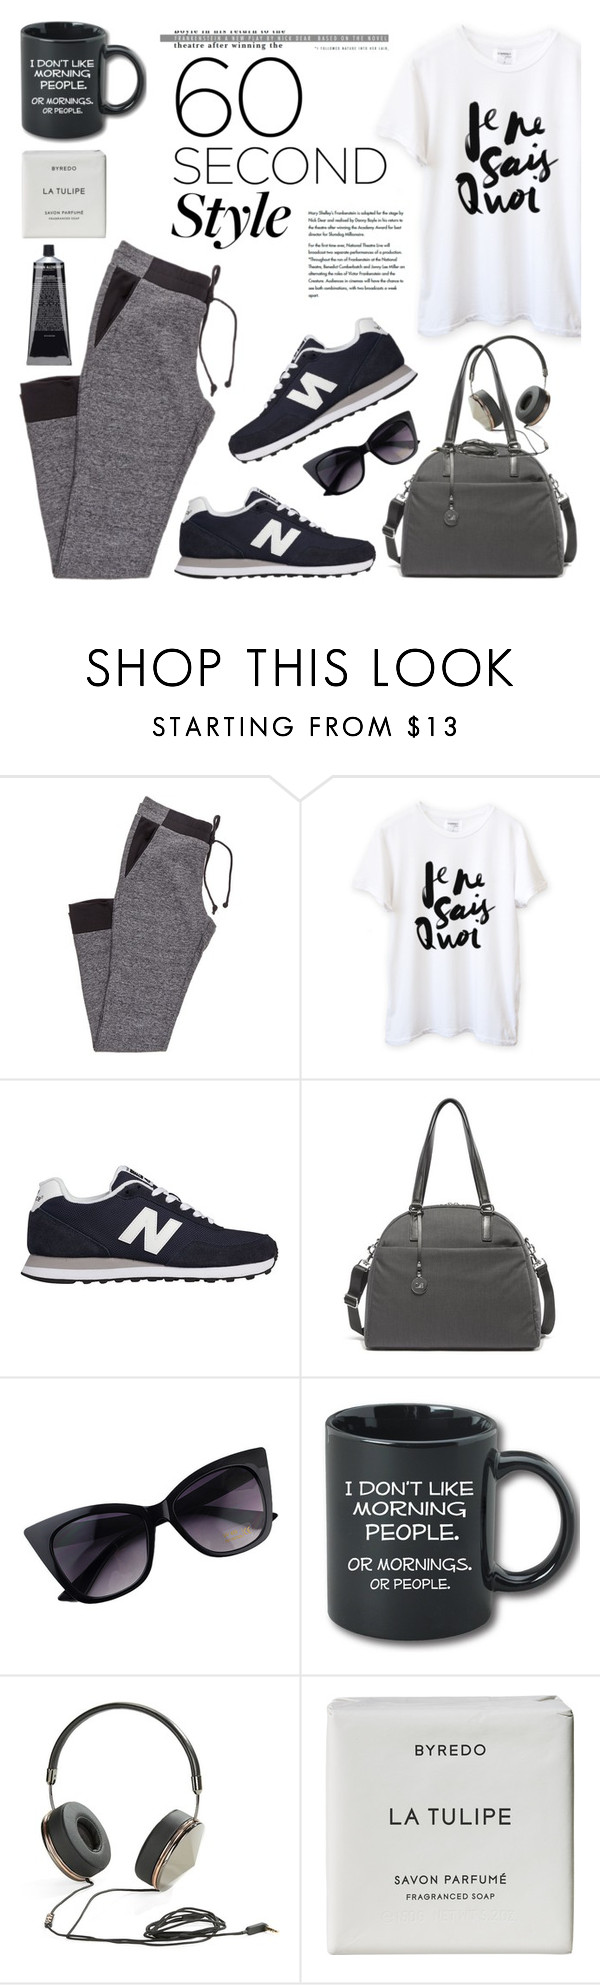 """""""60 Second Style: Yoga Pants"""" by helenevlacho ❤ liked on Polyvore featuring New Balance, Frends, Byredo, contestentry, yogapants and 60secondstyle"""